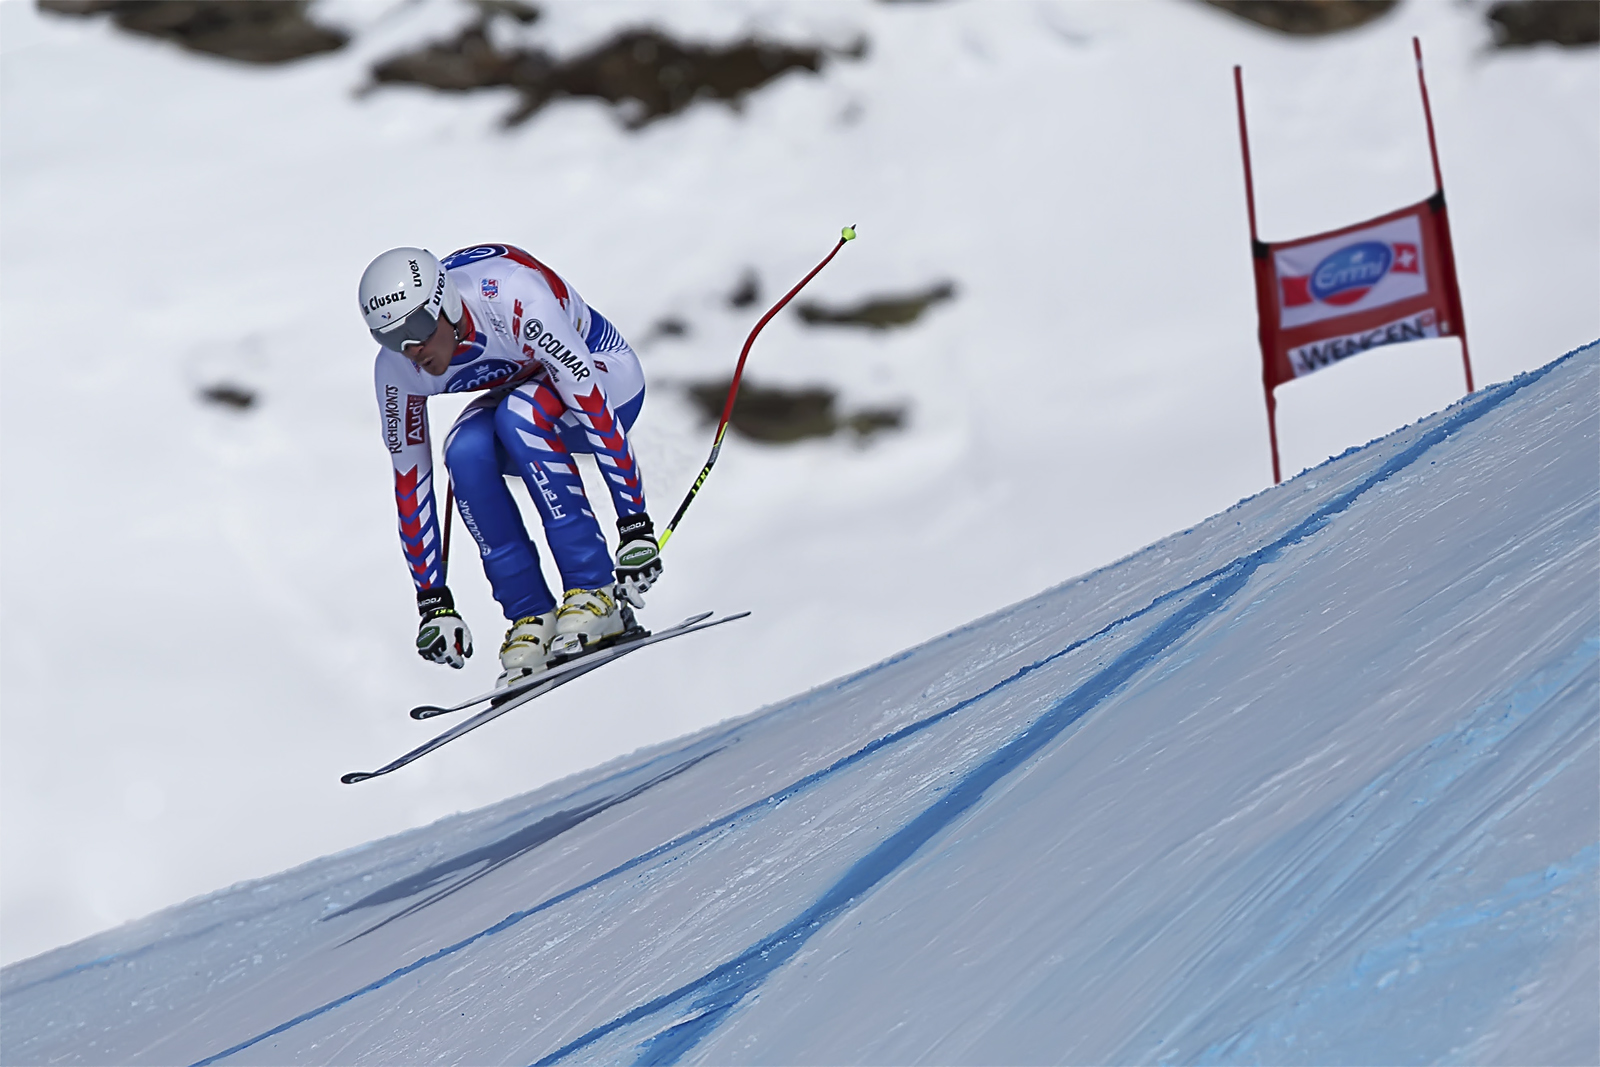 Johan Clarey, France, world record for the fastest downhill 169.1 Km/Hr.